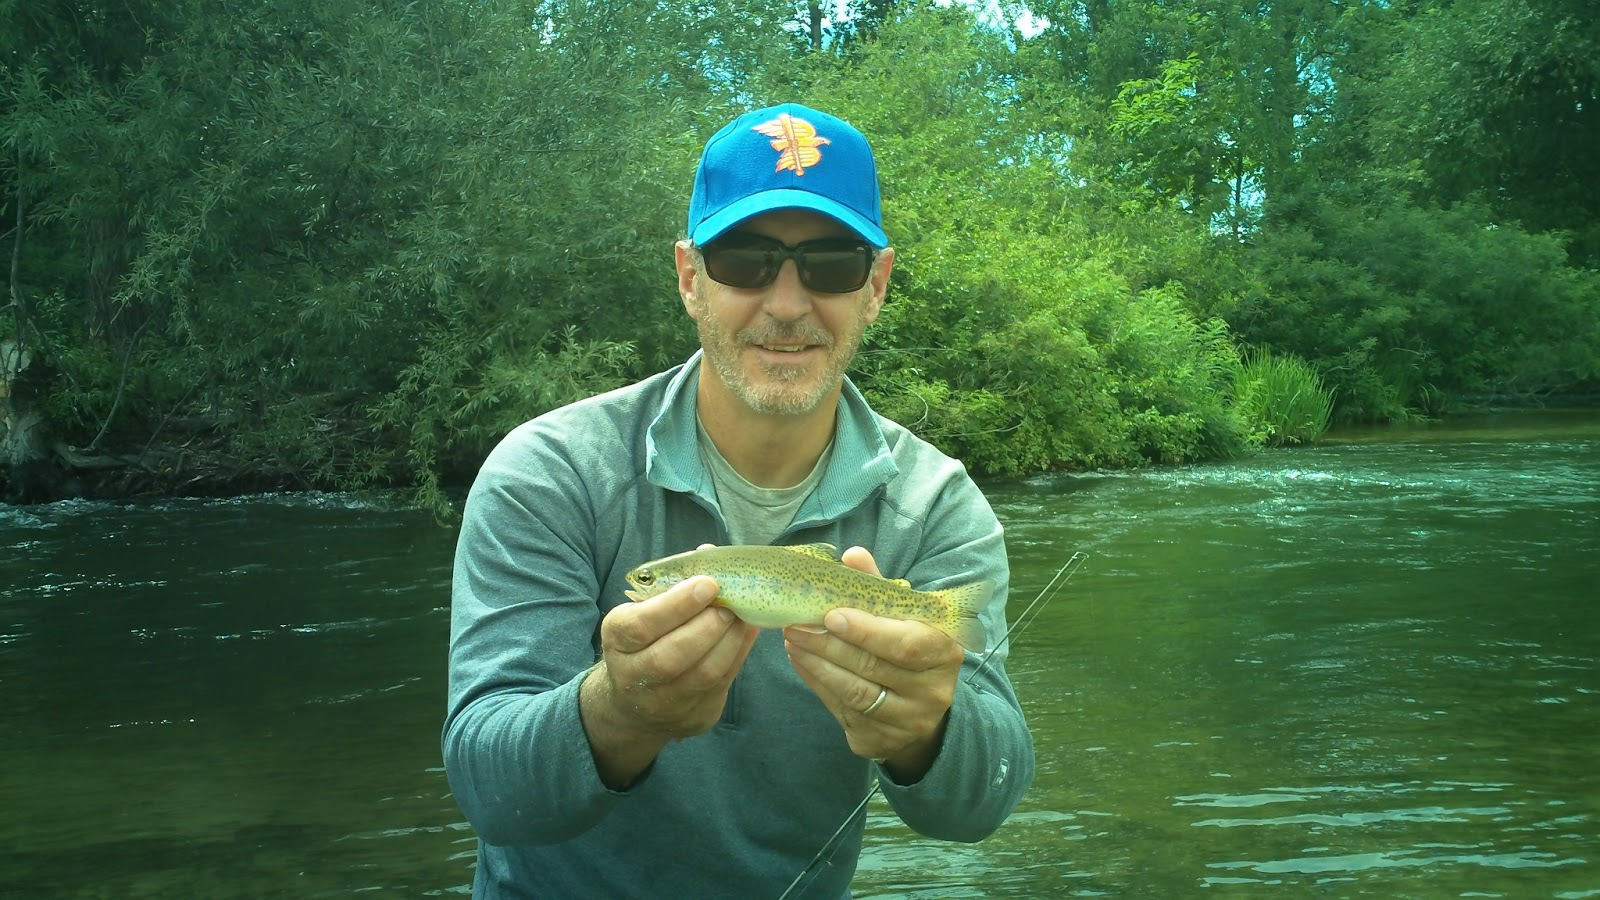 Scott hopper 39 s blog in search of the cutty rain brown a for Hank patterson fly fishing